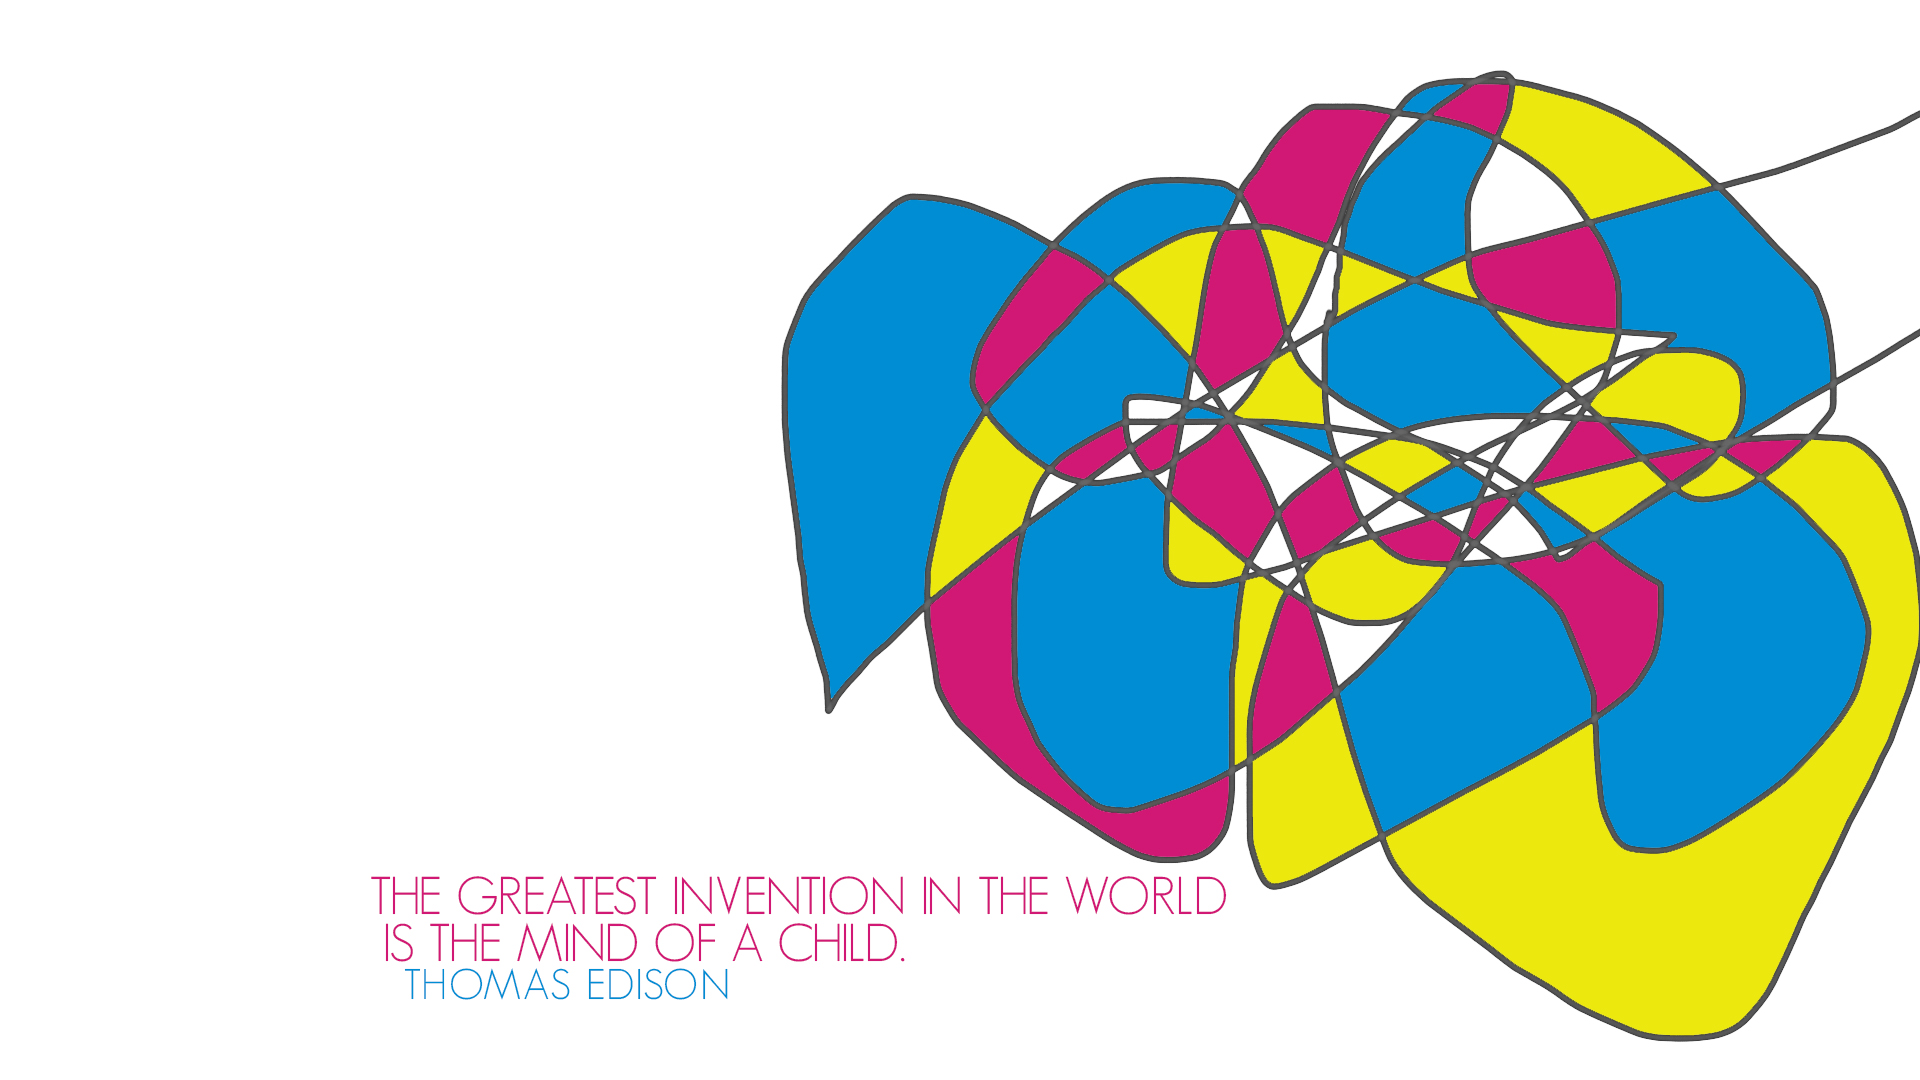 The greatest invention in the world is the mind of a child. Thomas Edison